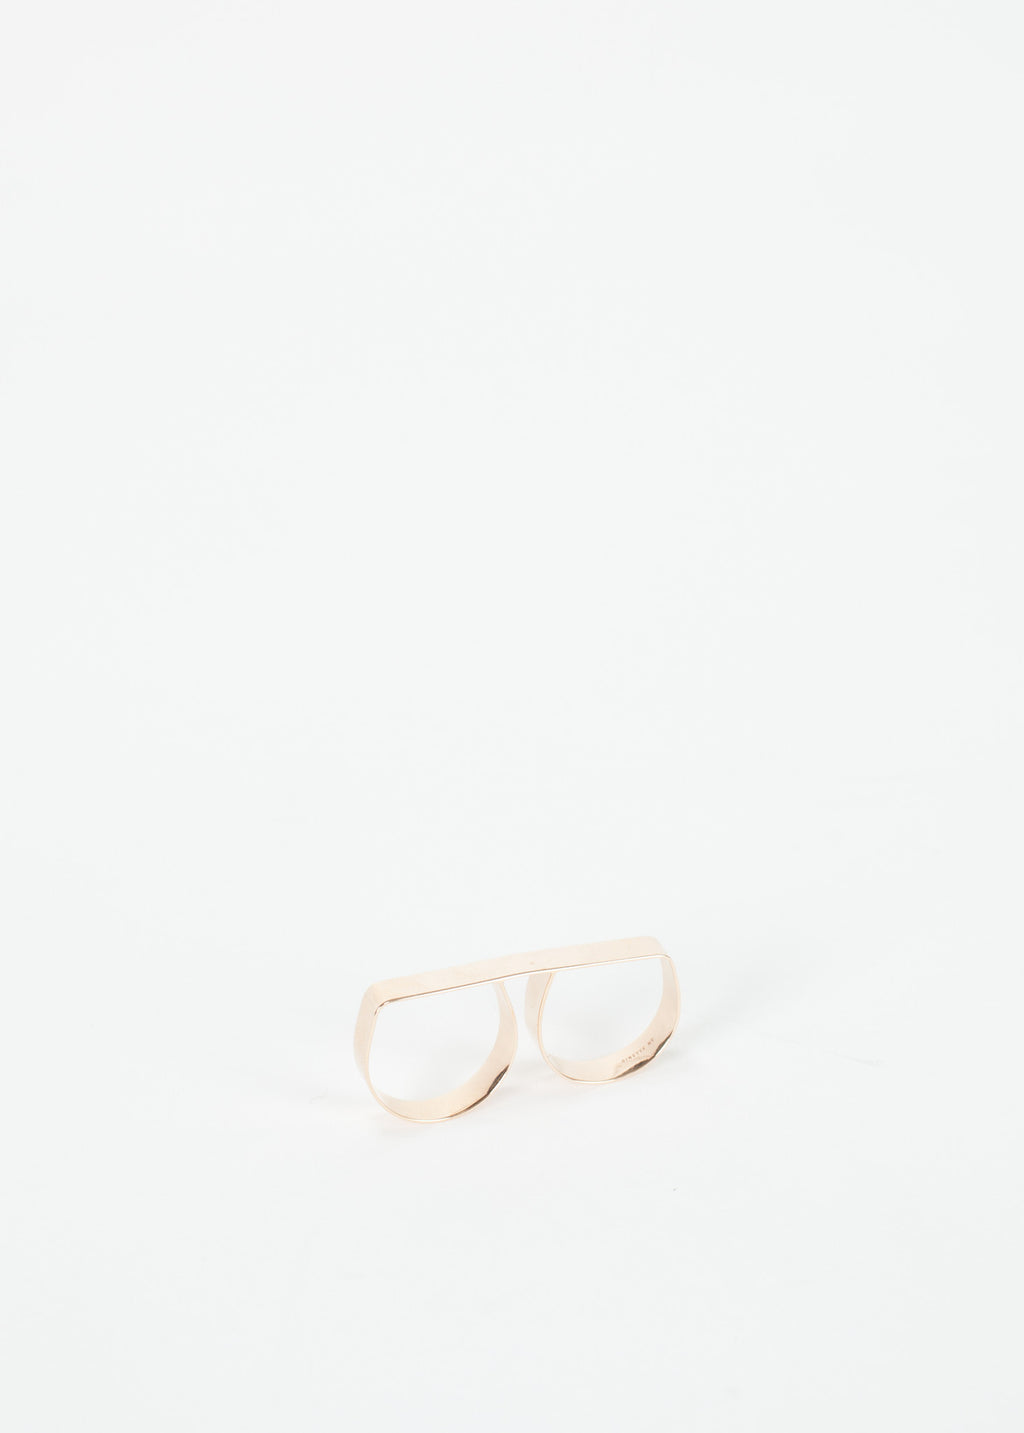 Ginette NY Baguette Double Ring